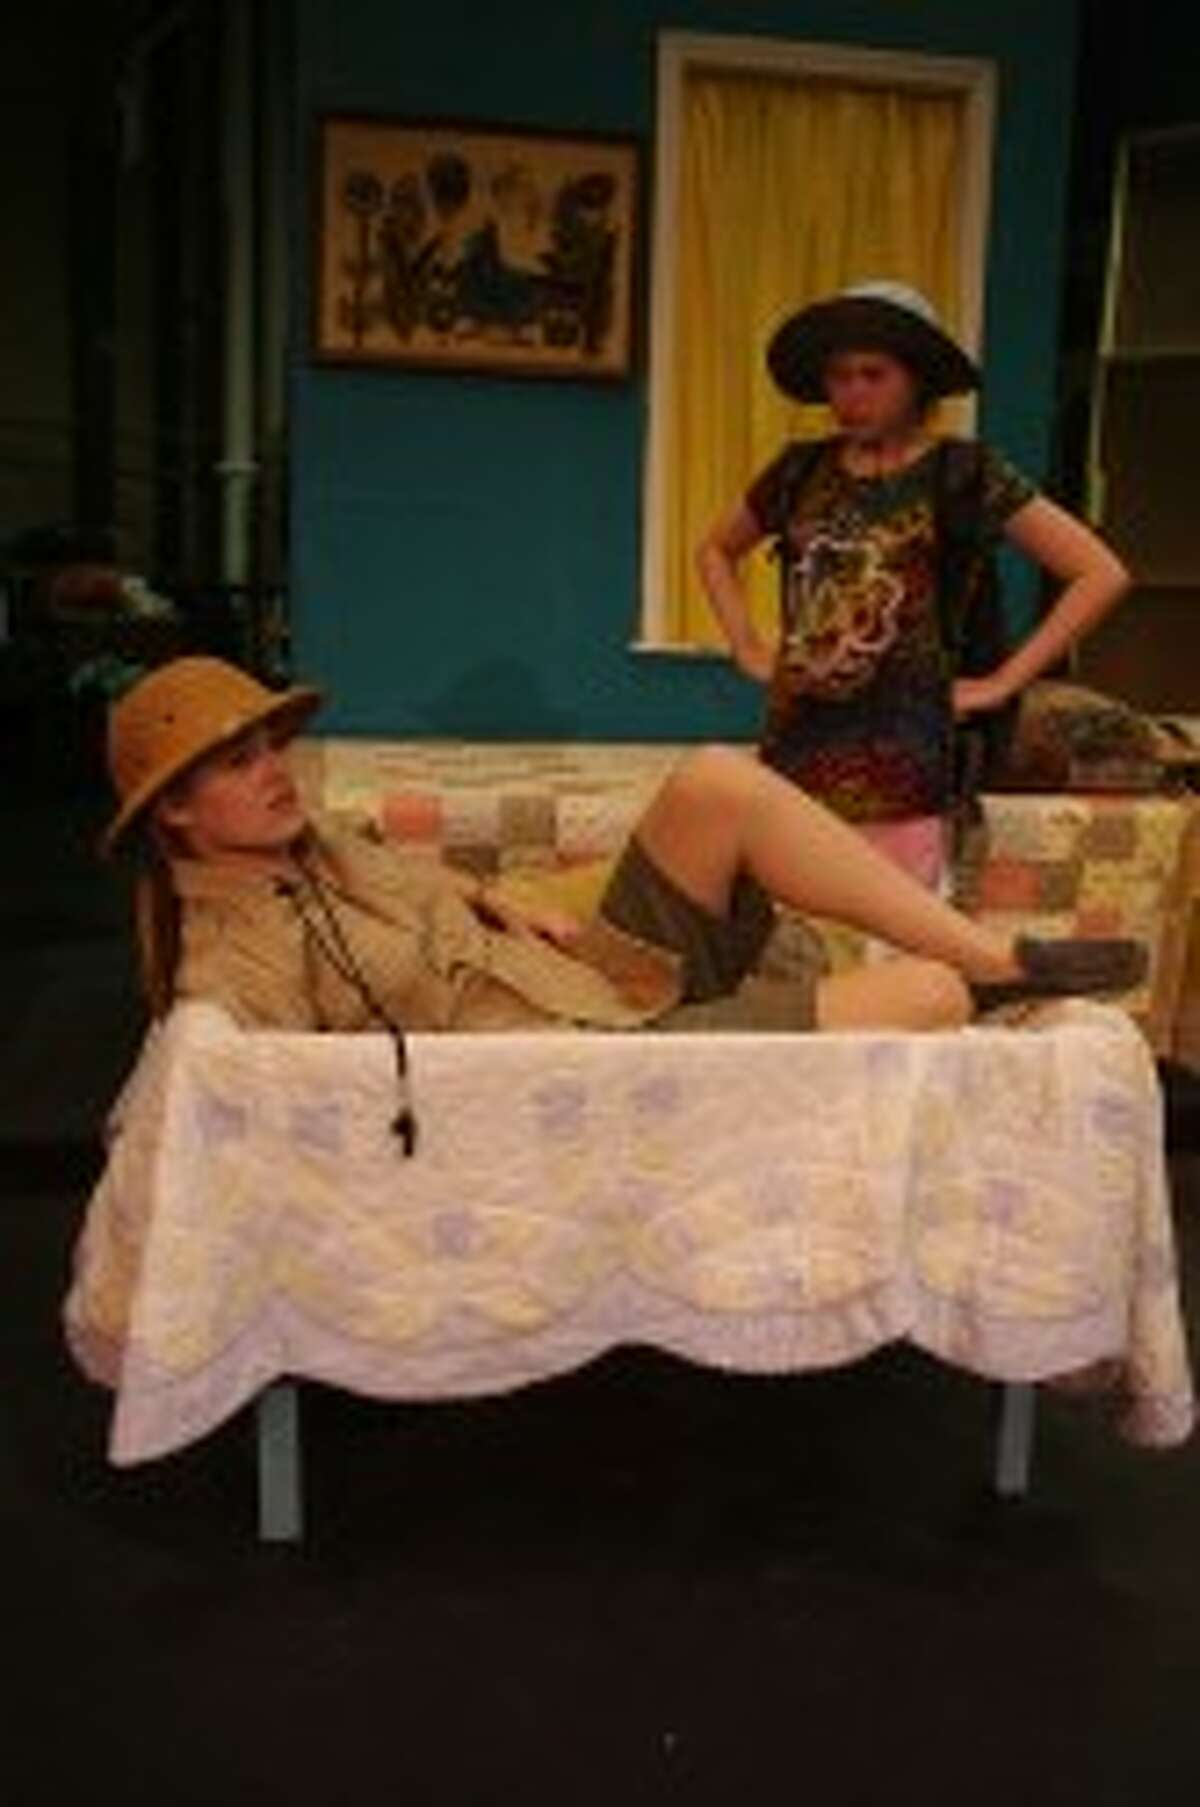 In the Ramsdell Theatre play